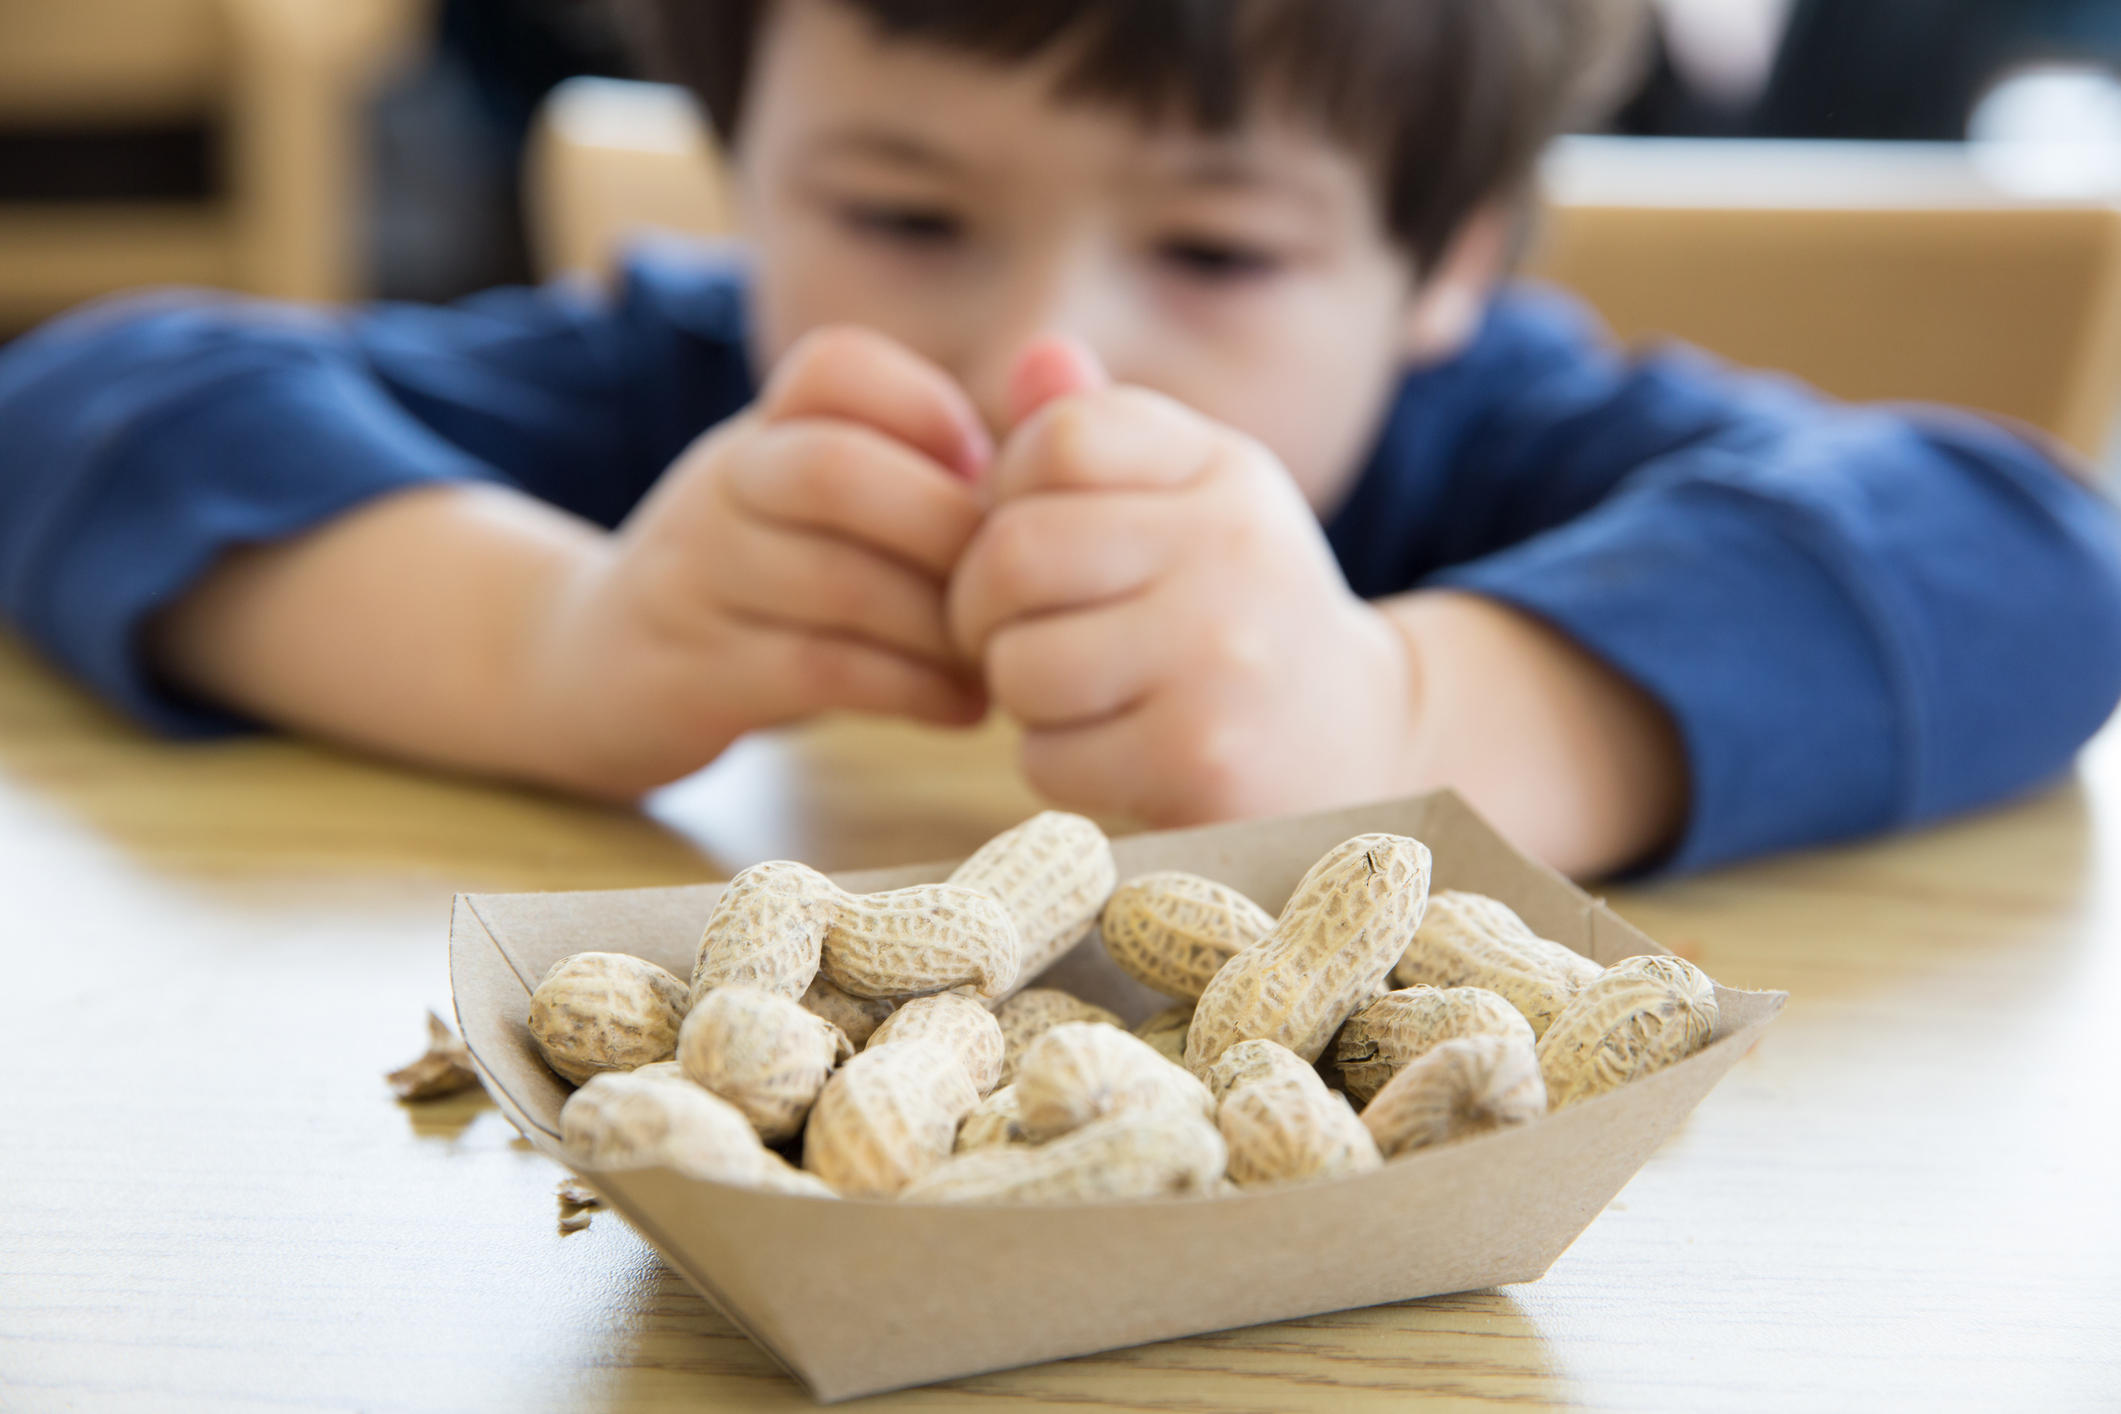 Little boy opening up peanuts to eat in a restaurant